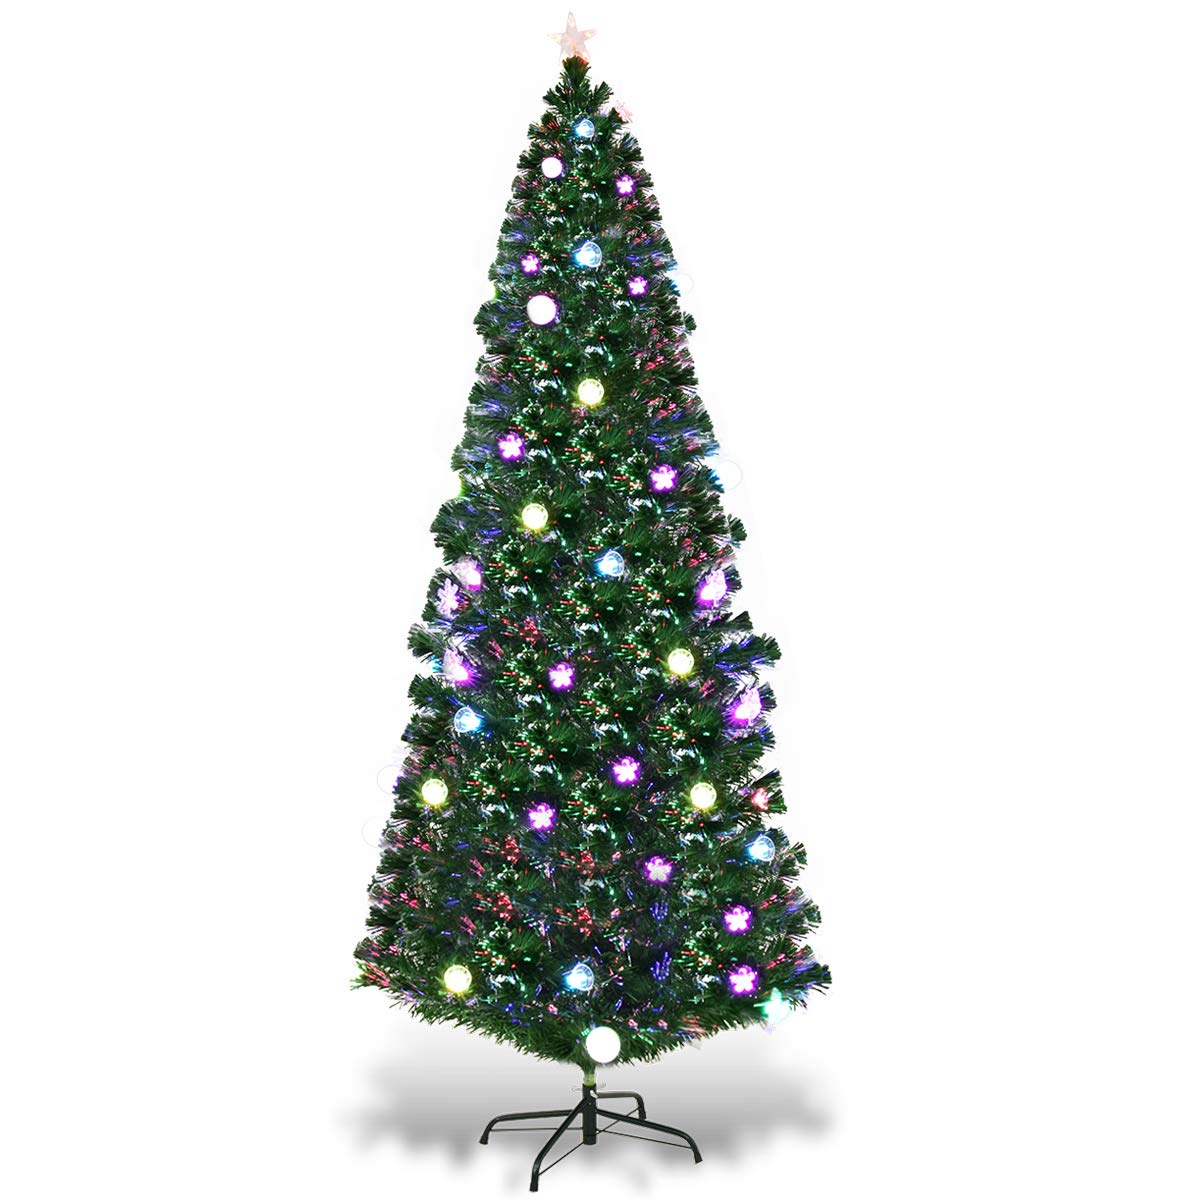 93e88f731a78 Amazon.com: Goplus 7FT Fiber Optic Christmas Tree Pre-Lit Artificial  Fireworks Spruce Tree w/Multicolor LED Lights, Top Star & Blossom Bell  Decorations: ...